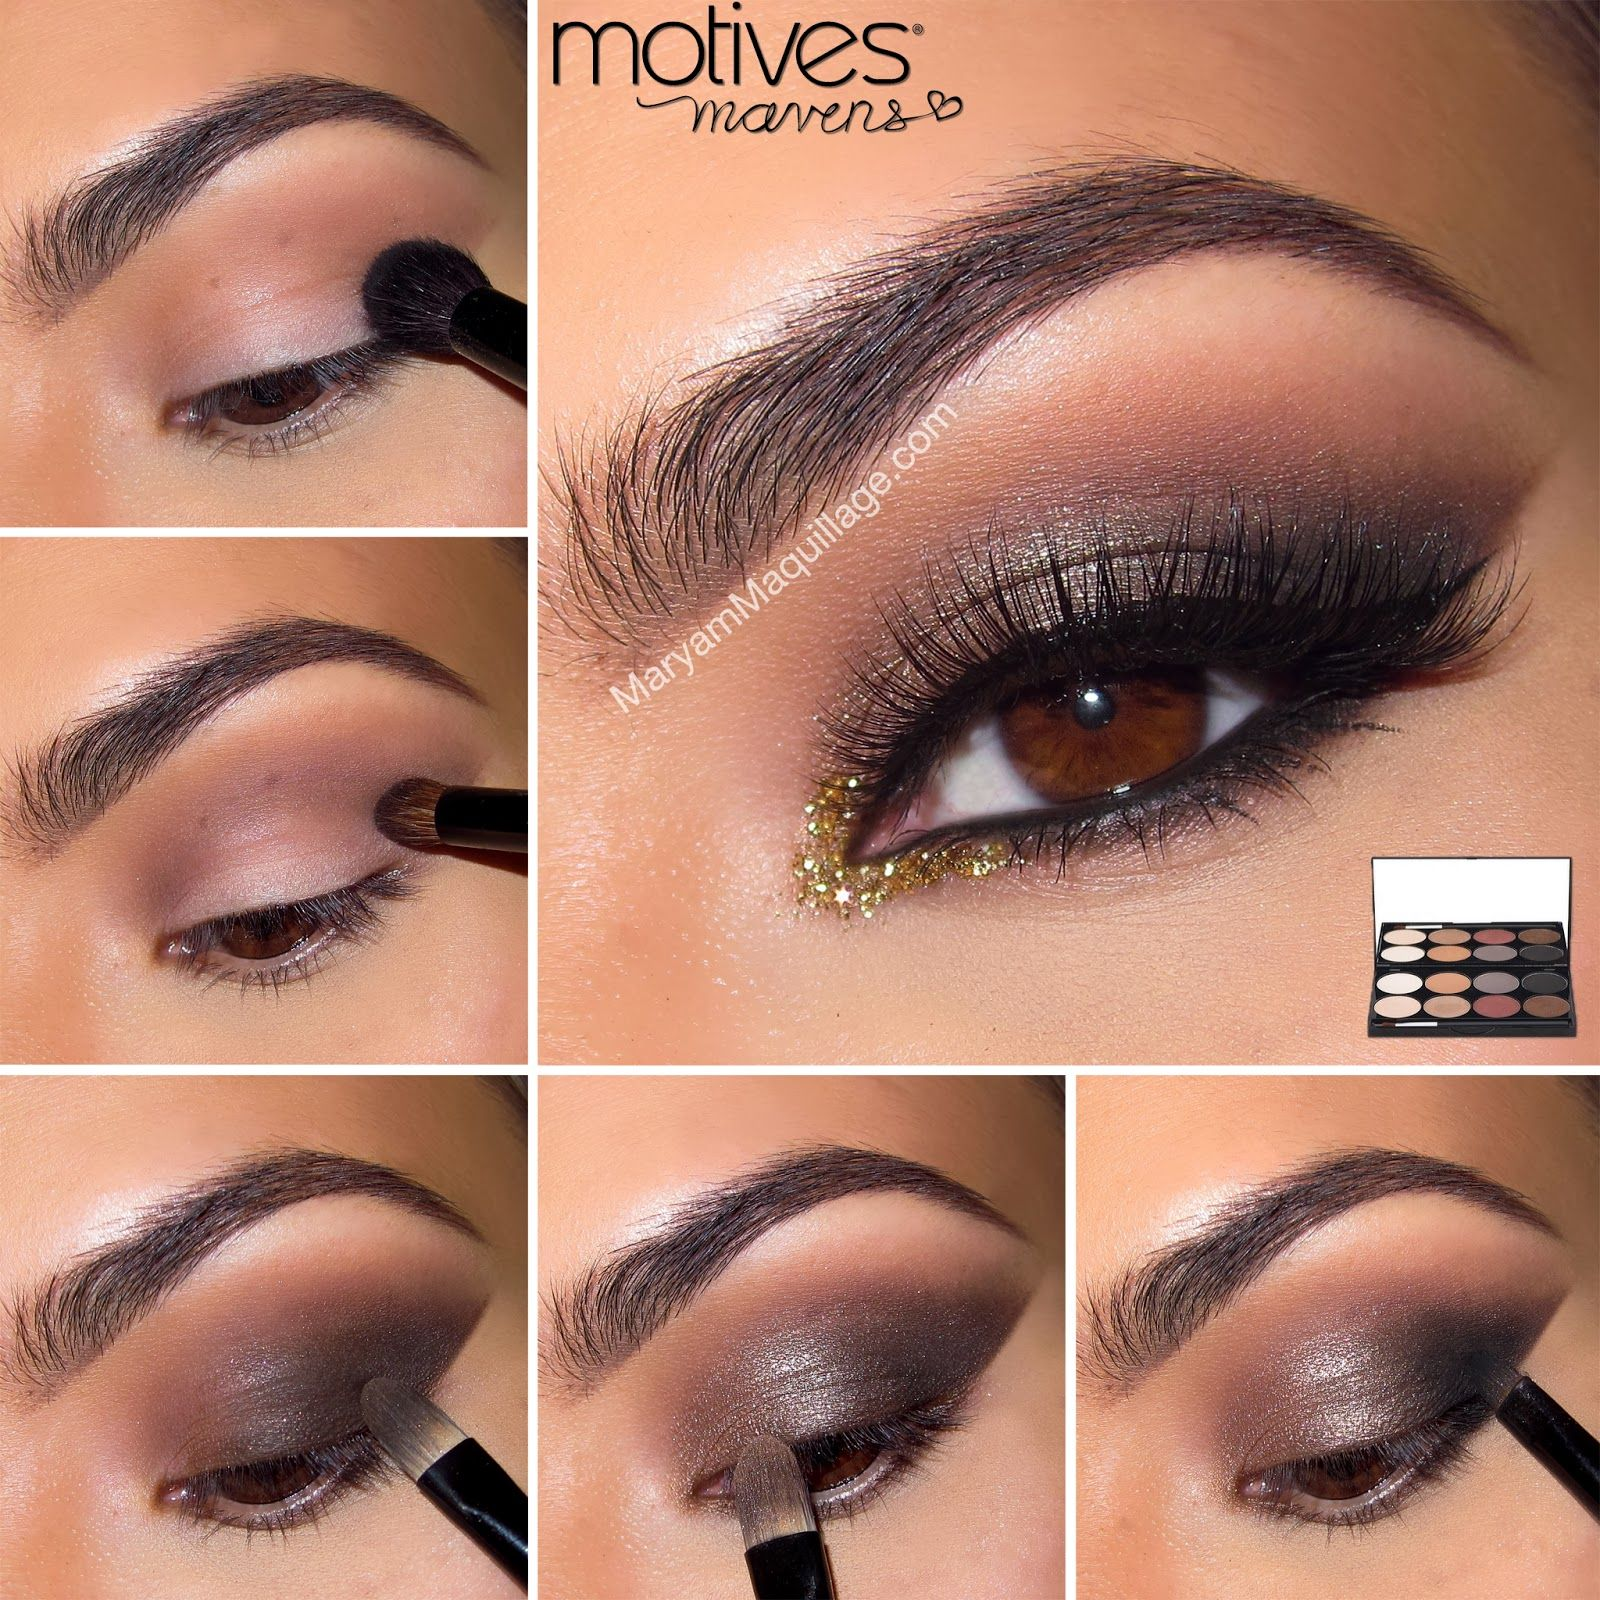 Smokey cat eye makeup element palette chocolate truffle smokey eye makeup tutorials baditri Image collections